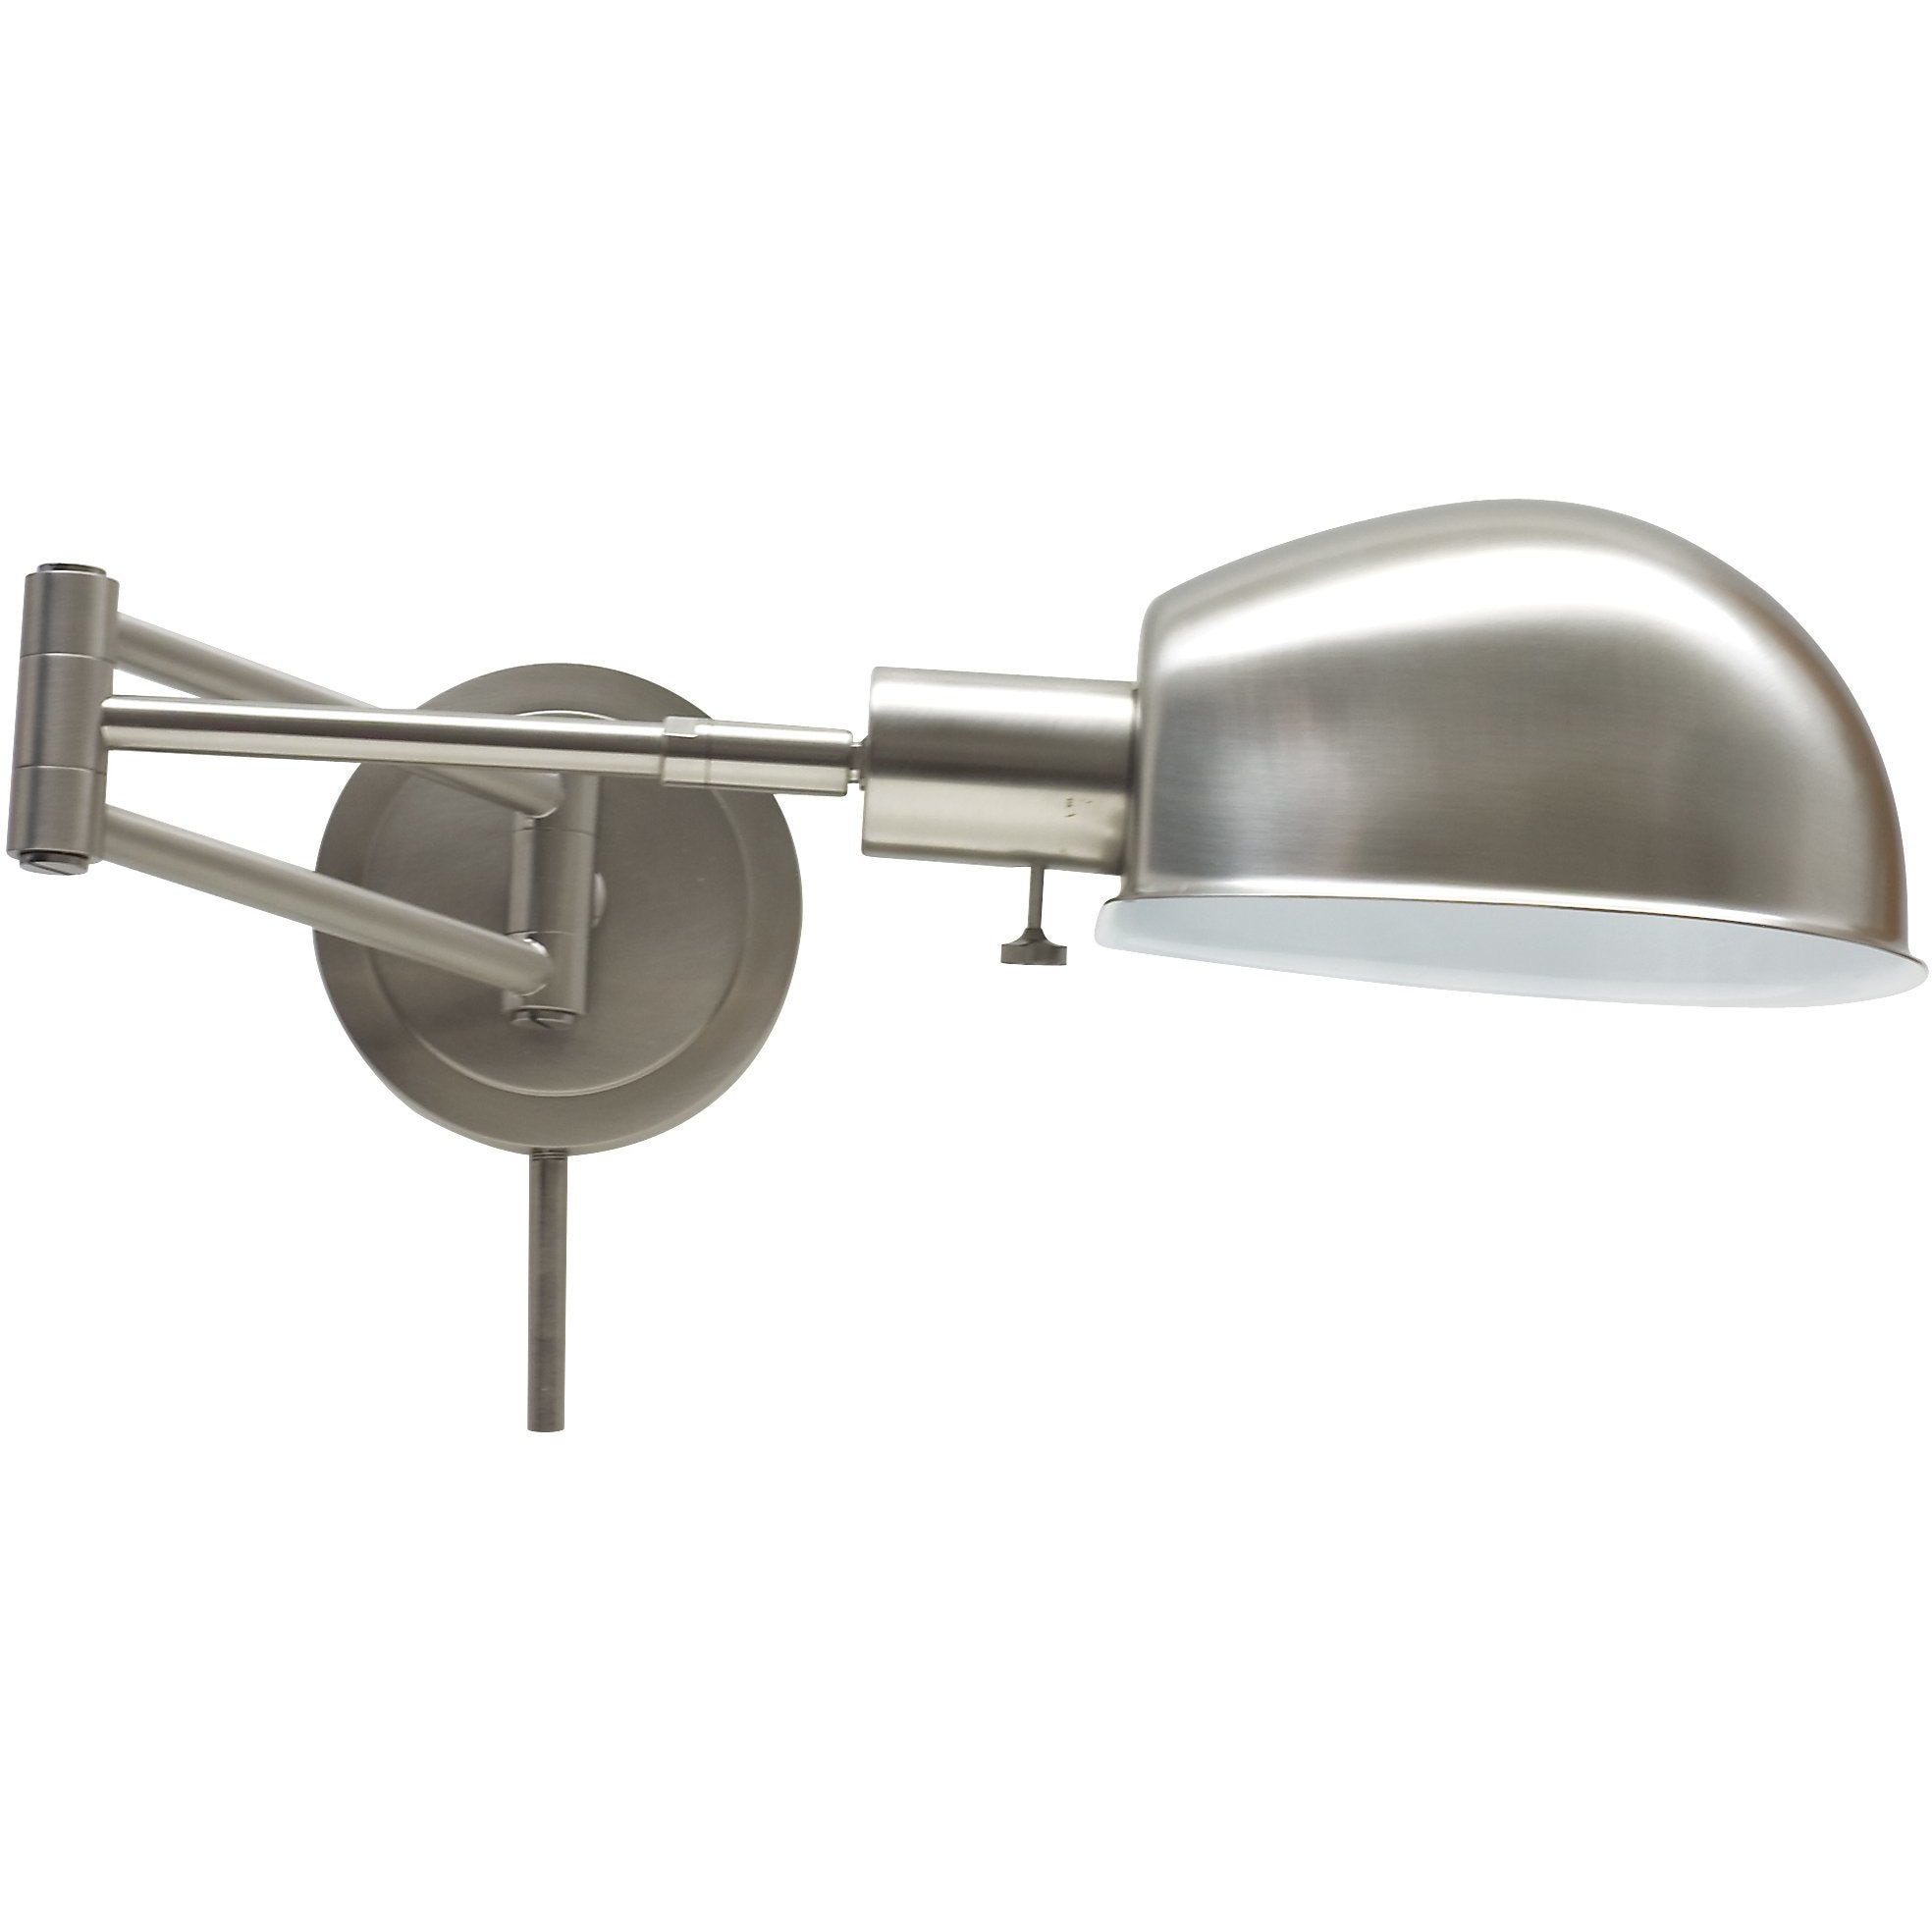 House Of Troy Wall Lamps Addison Pharmacy Wall Lamp by House Of Troy AD425-SN